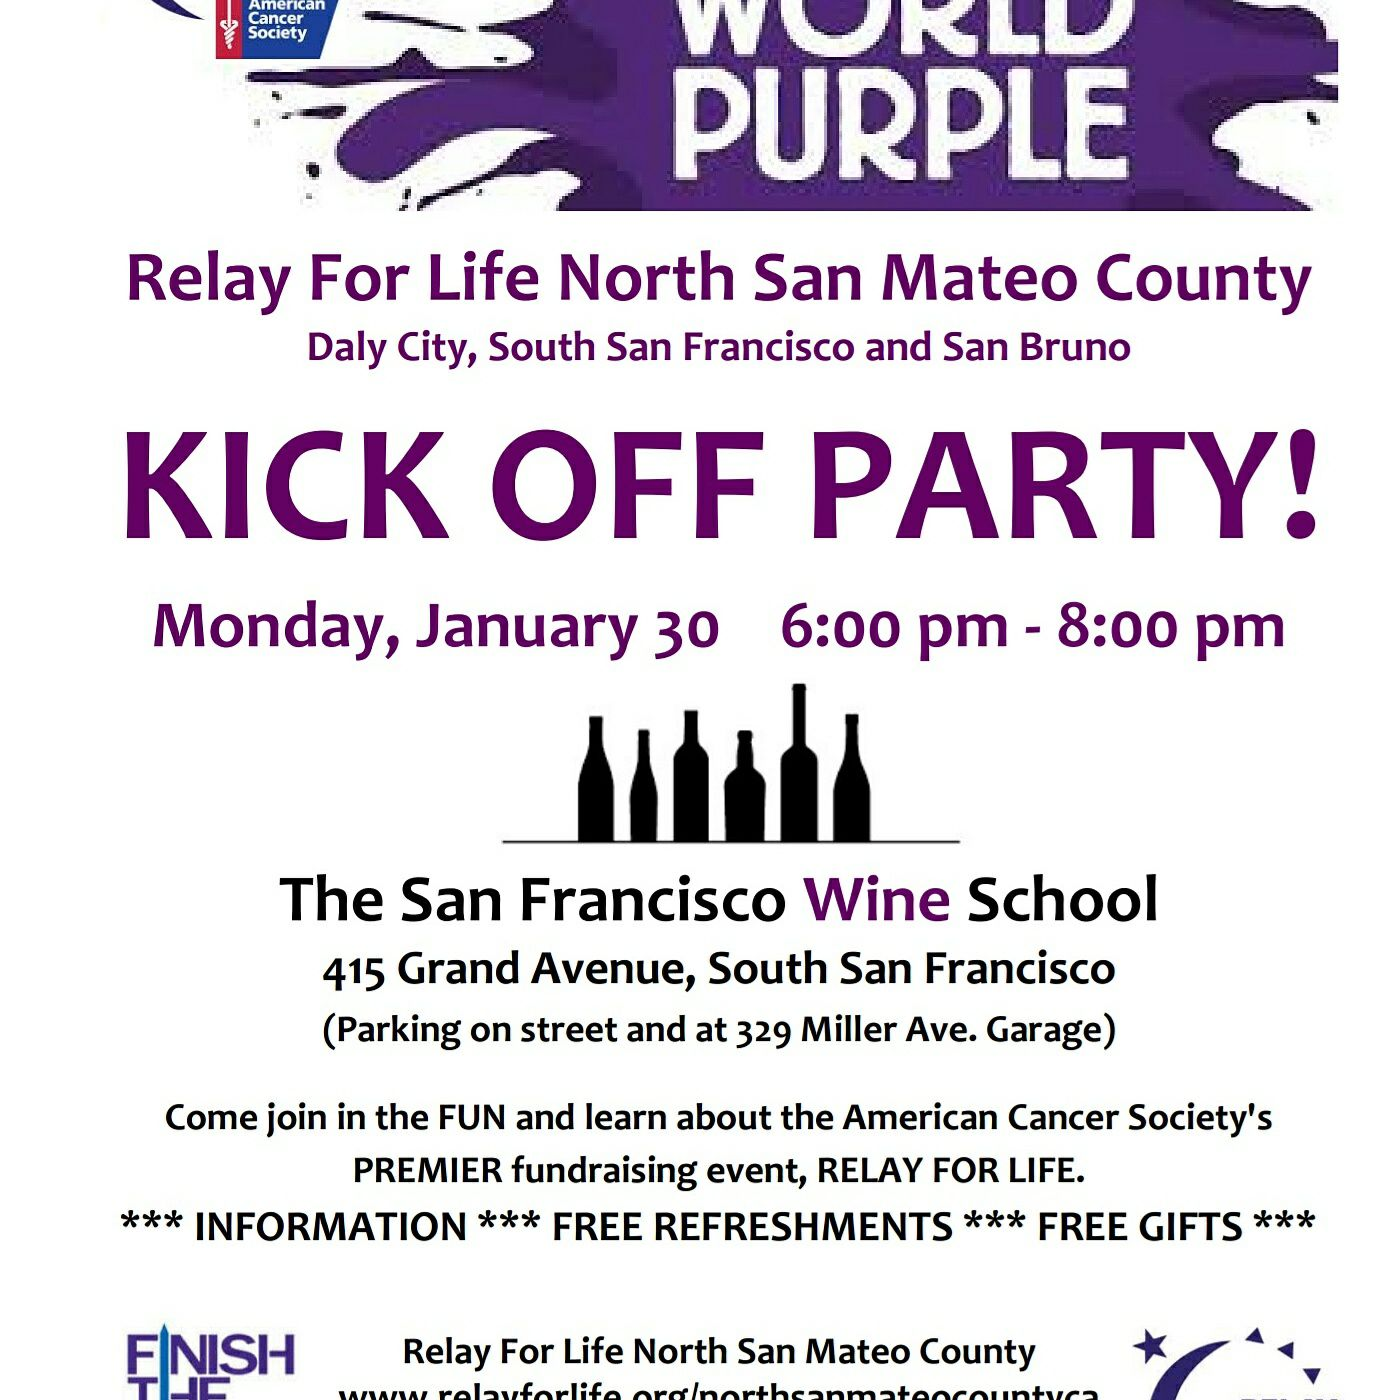 American Cancer Society Relay For Life: American Cancer Society Relay For Life Kick Off Event